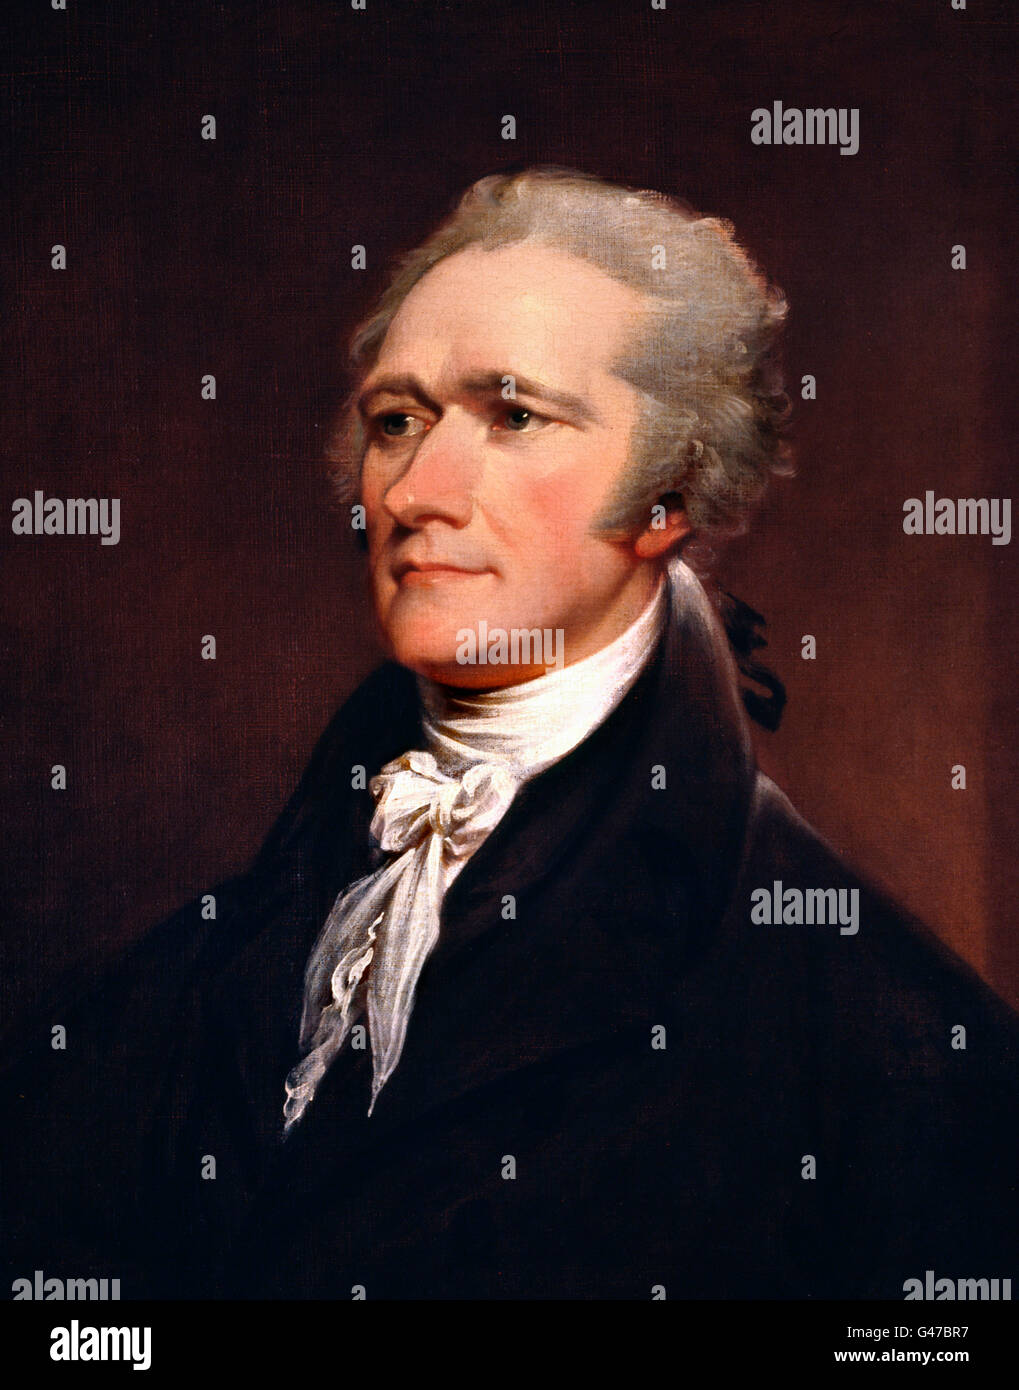 Alexander Hamilton (1755-1804). Portrait by John Trumbull, oil on canvas, 1806 - Stock Image